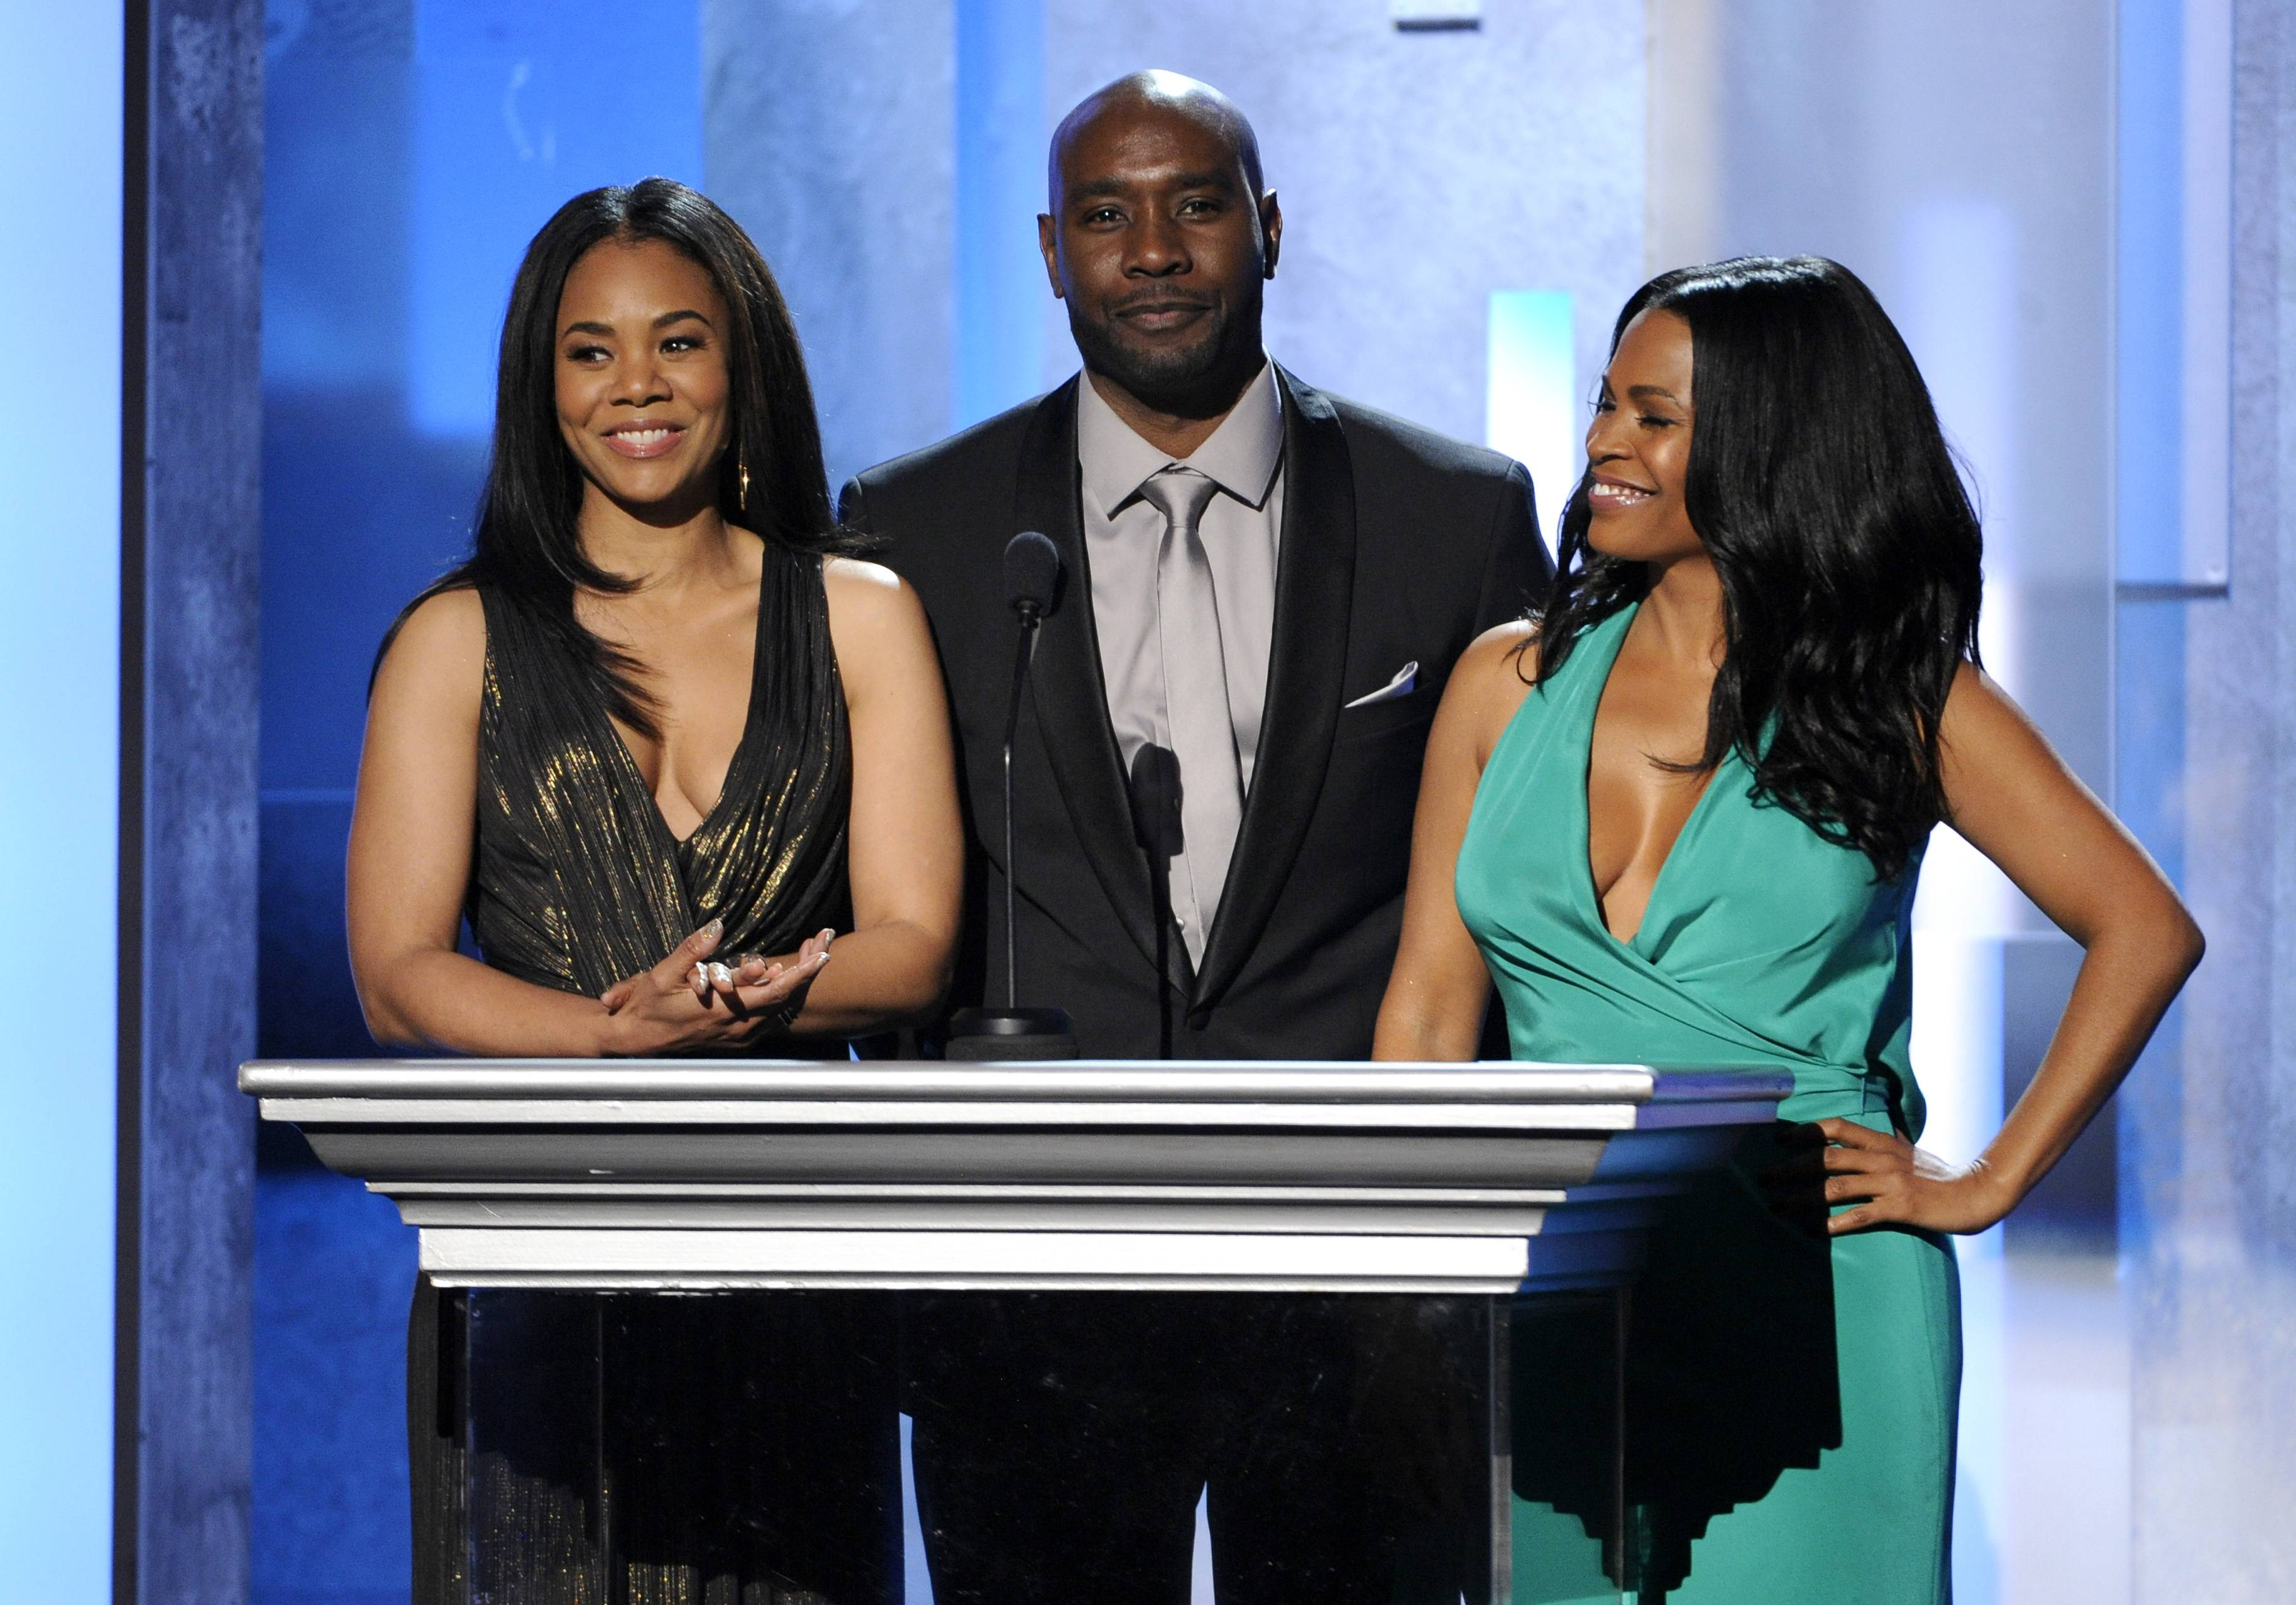 From left, Regina Hall, Morris Chestnut, and Nia Long speak on stage at the 45th NAACP Image Awards at the Pasadena Civic Auditorium on Saturday in Pasadena, Calif.